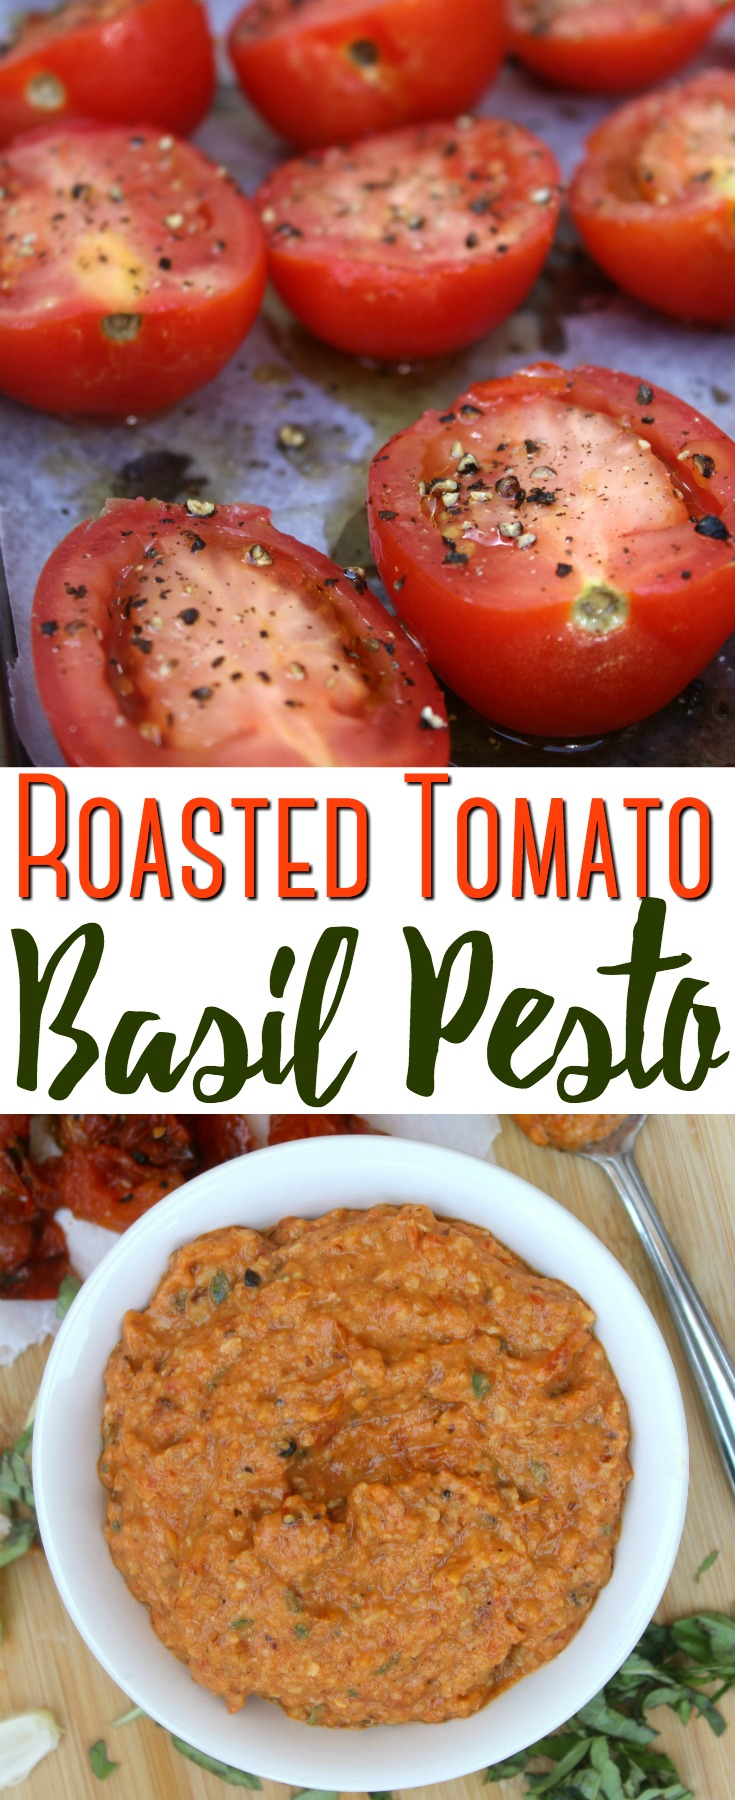 This creamy and rich roasted tomato basil pesto is packed with flavor and a wonderful way to use an abundance of seasonal tomatoes!